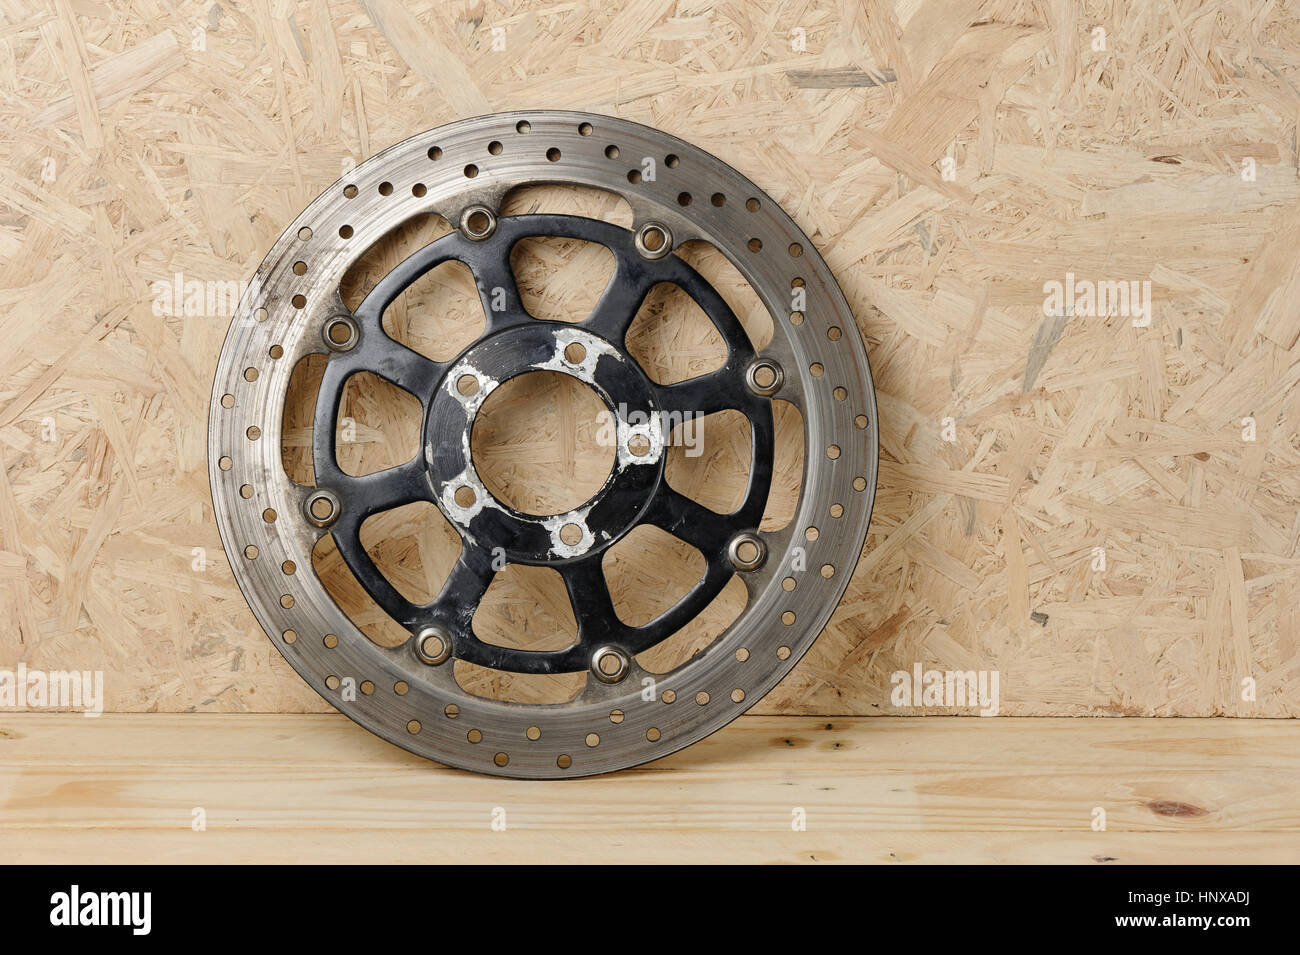 closeup old motorcycle disc break, vehicle parts Stock Photo ...